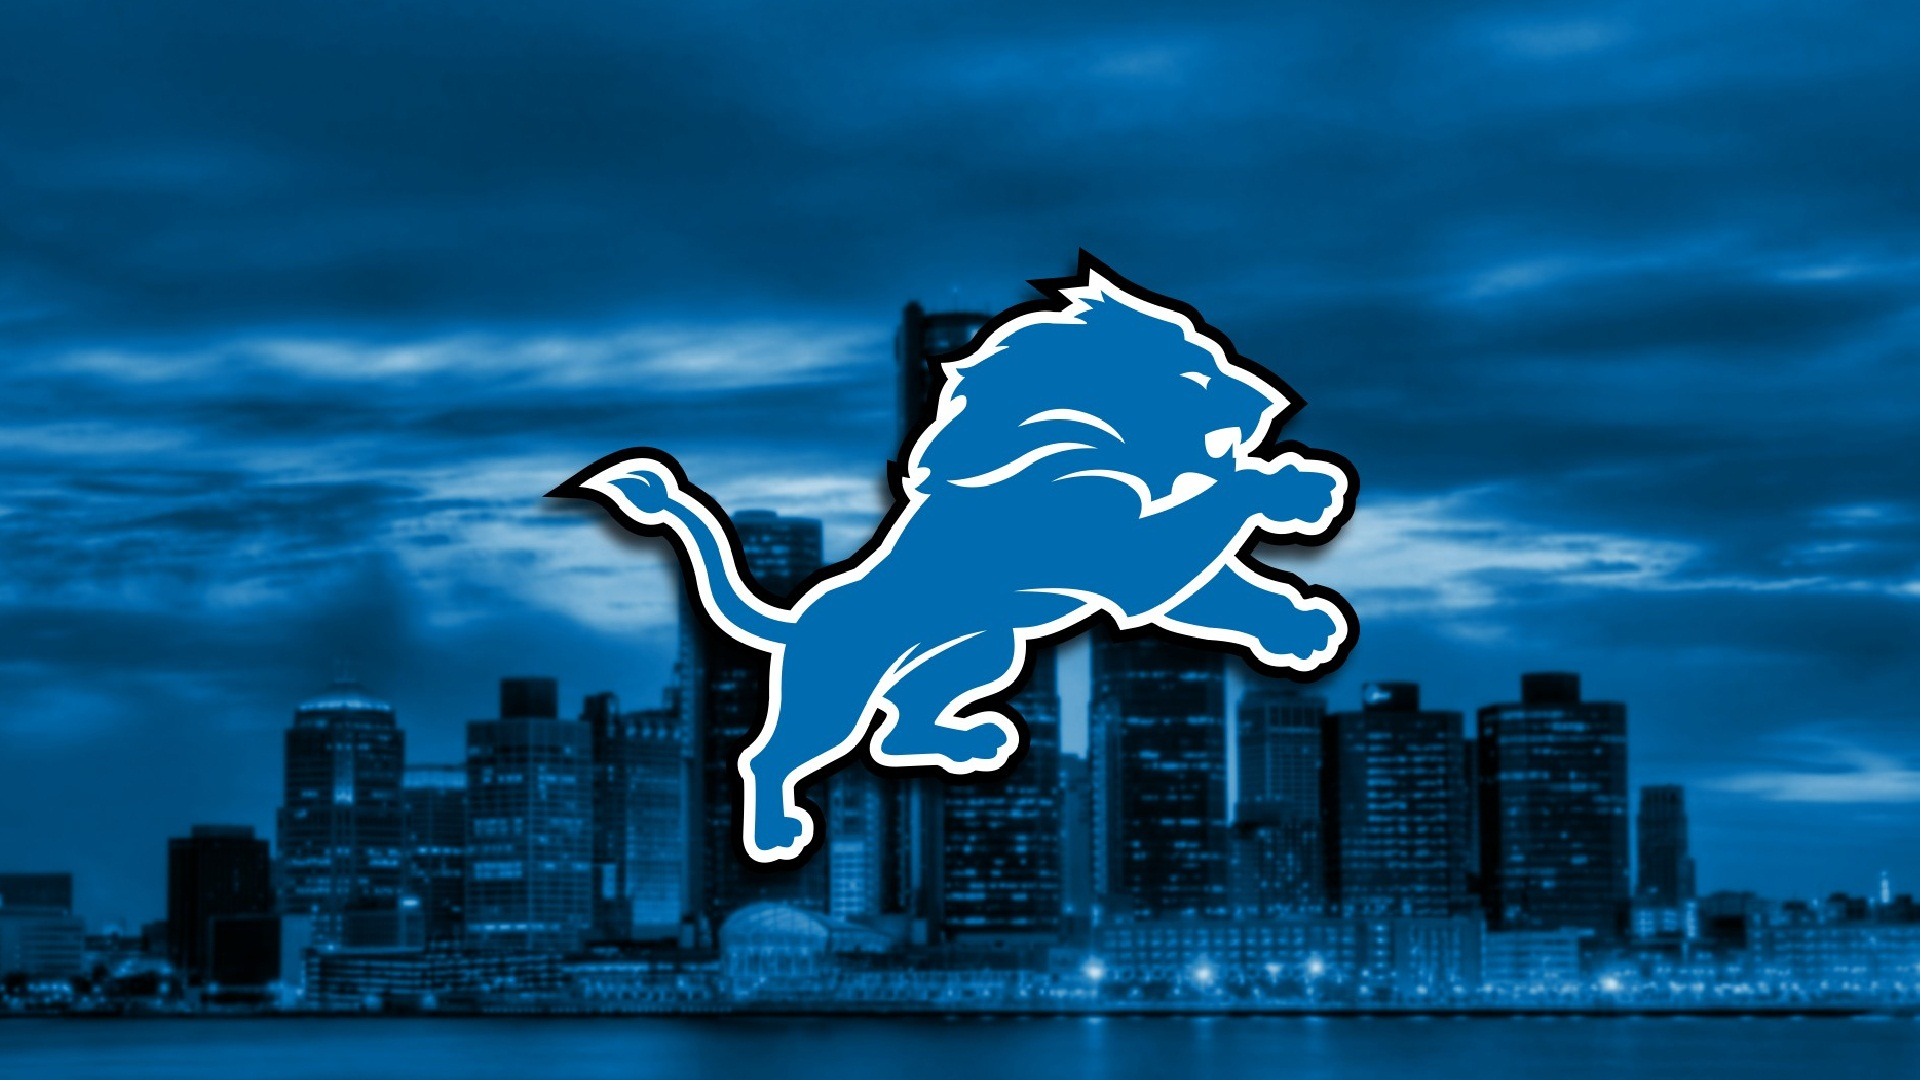 Detroit Lions Wallpaper 1920x1080